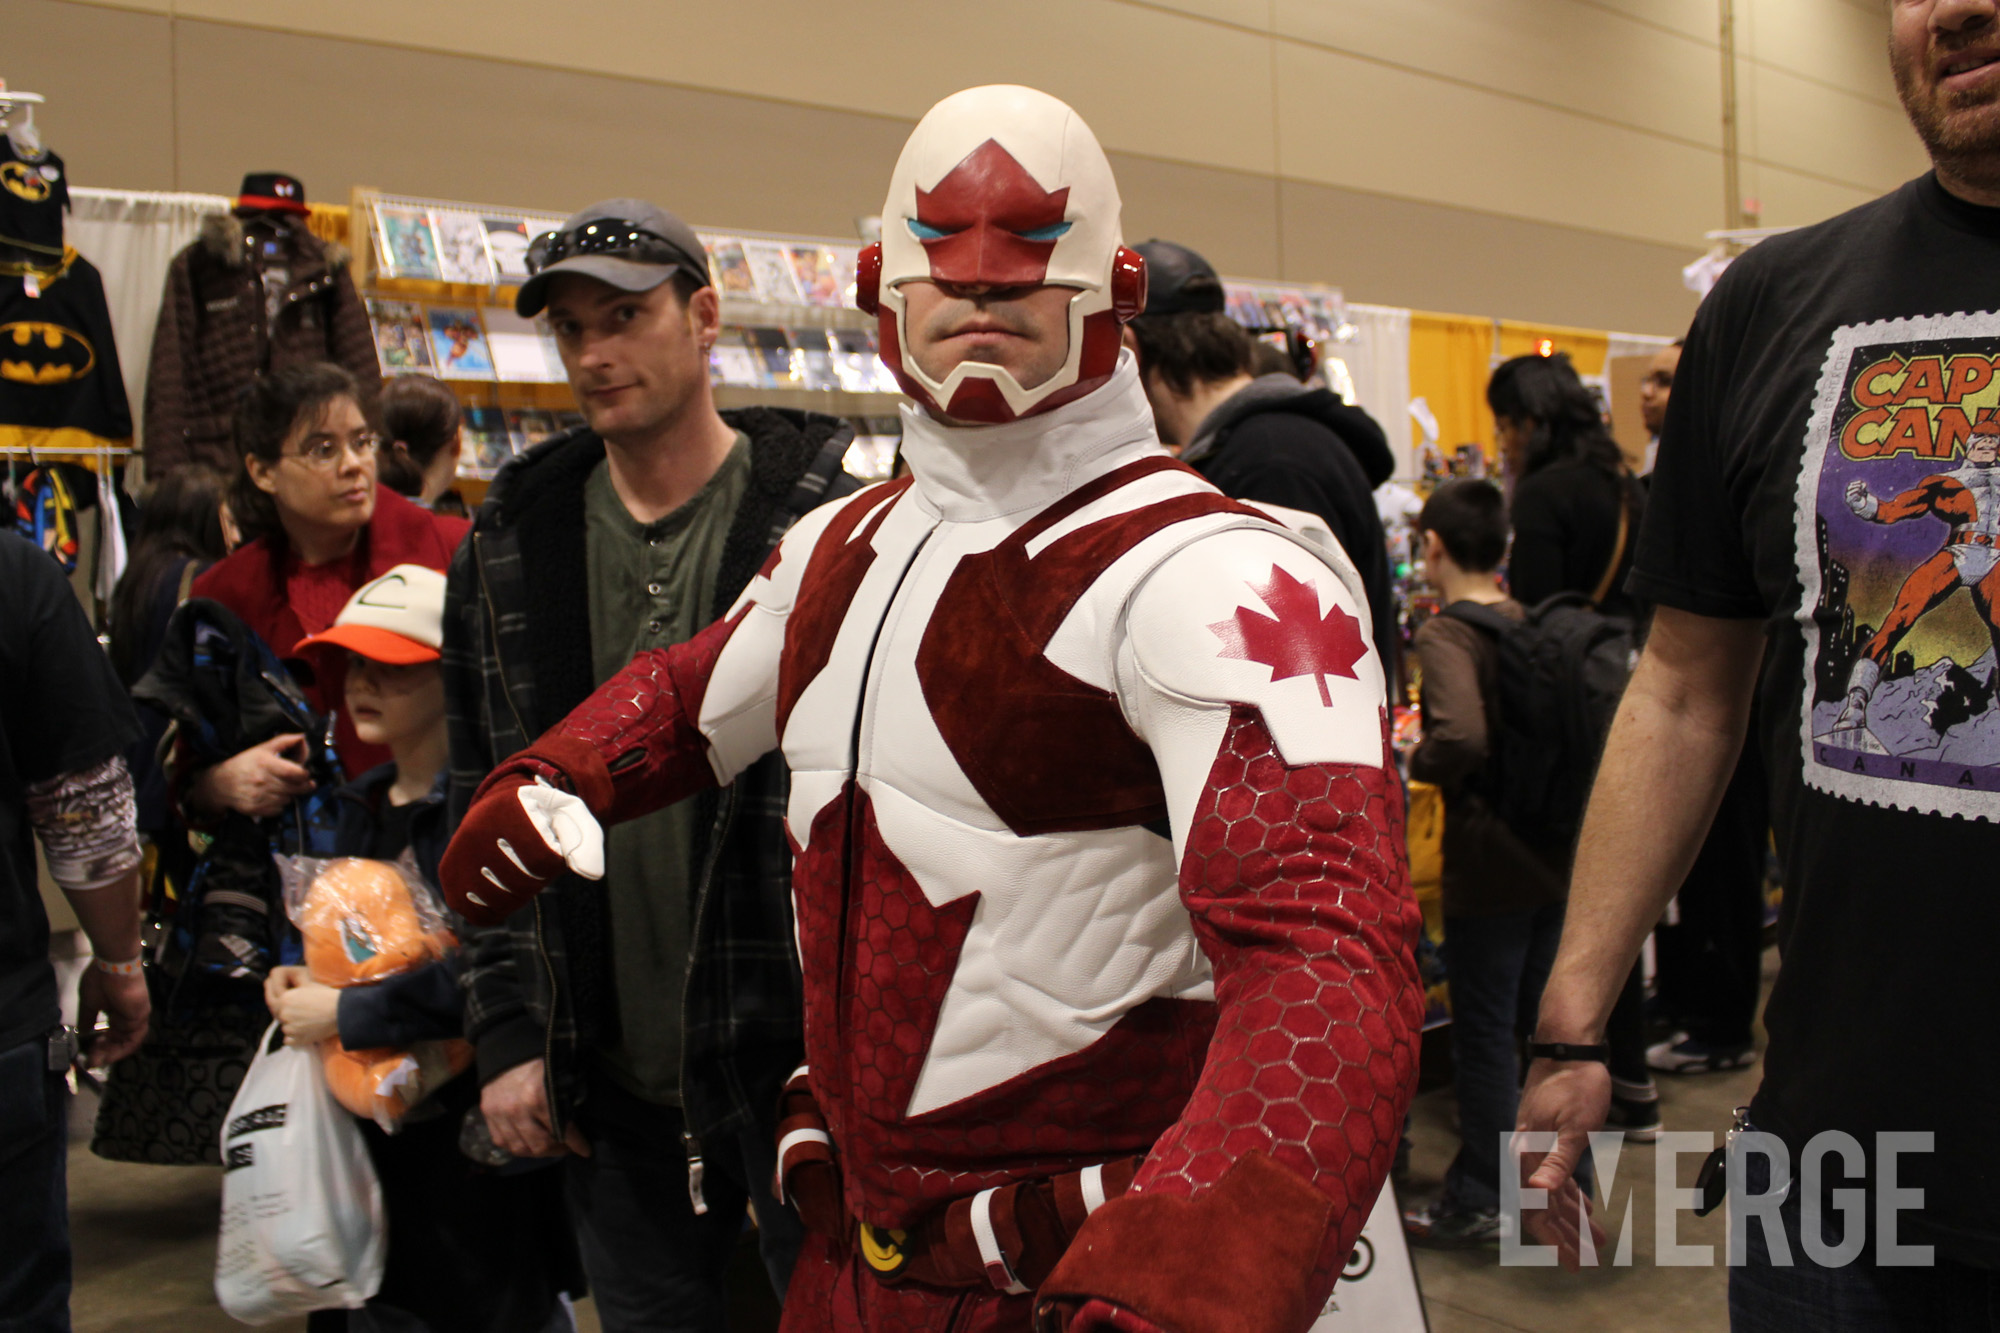 Canadian superhero Captain Canuck out on the floor showing off his costume